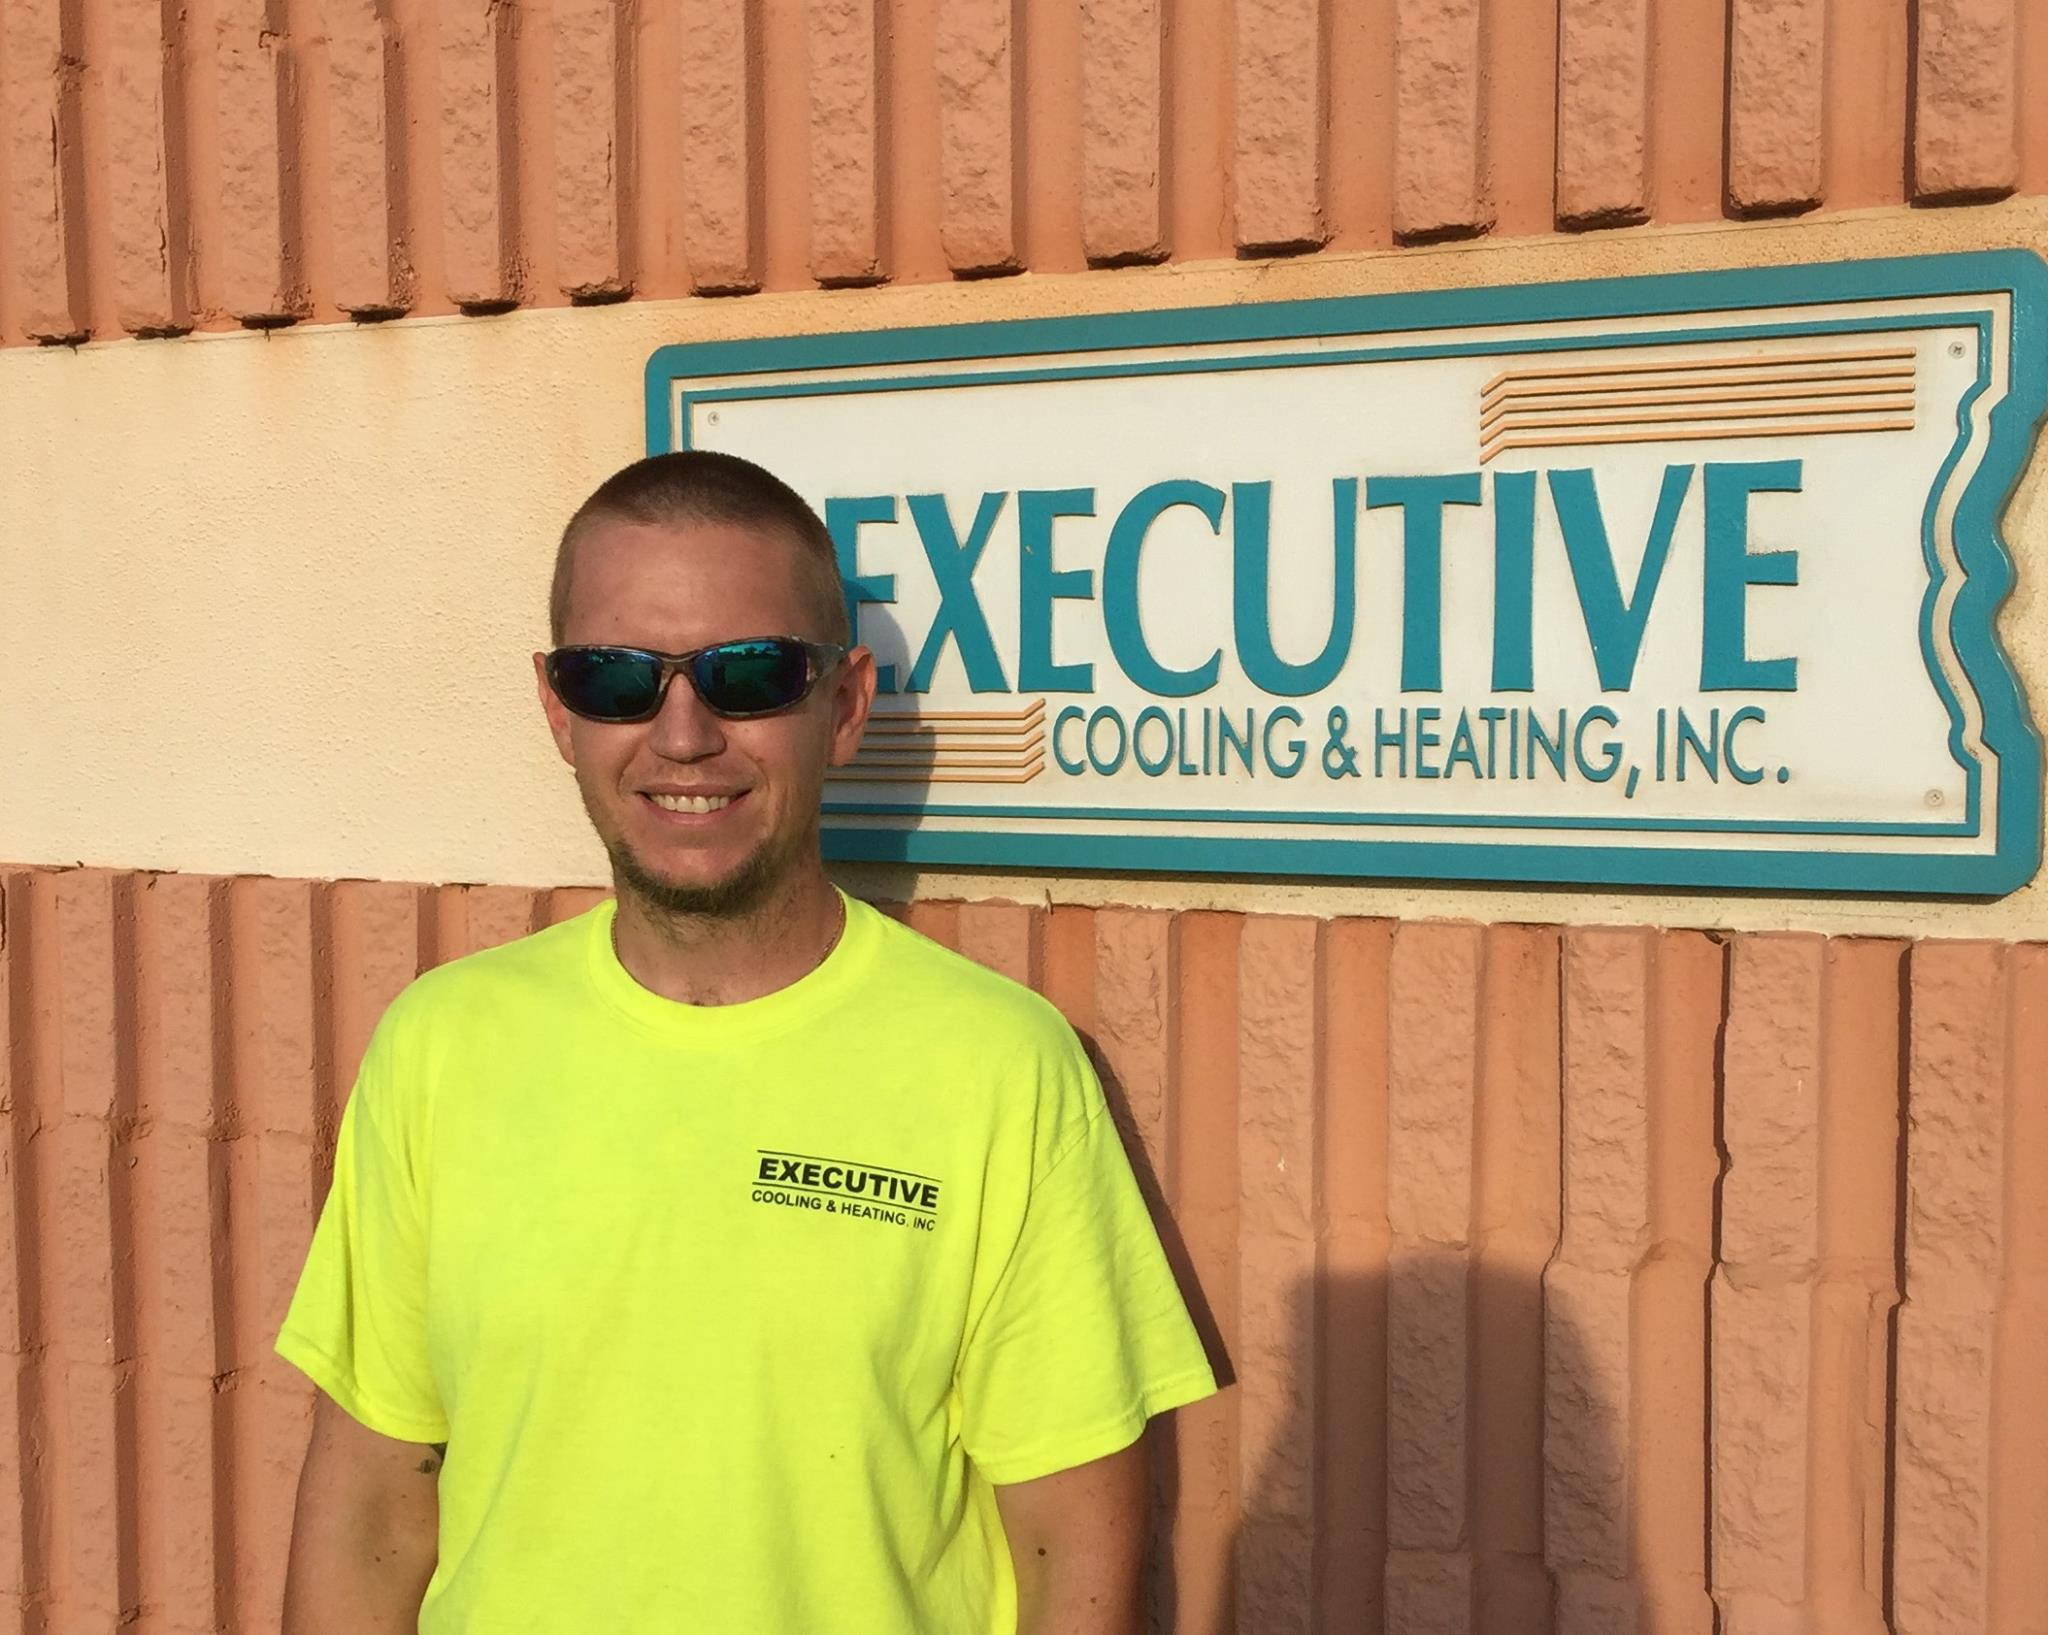 Executive Cooling & Heating image 1